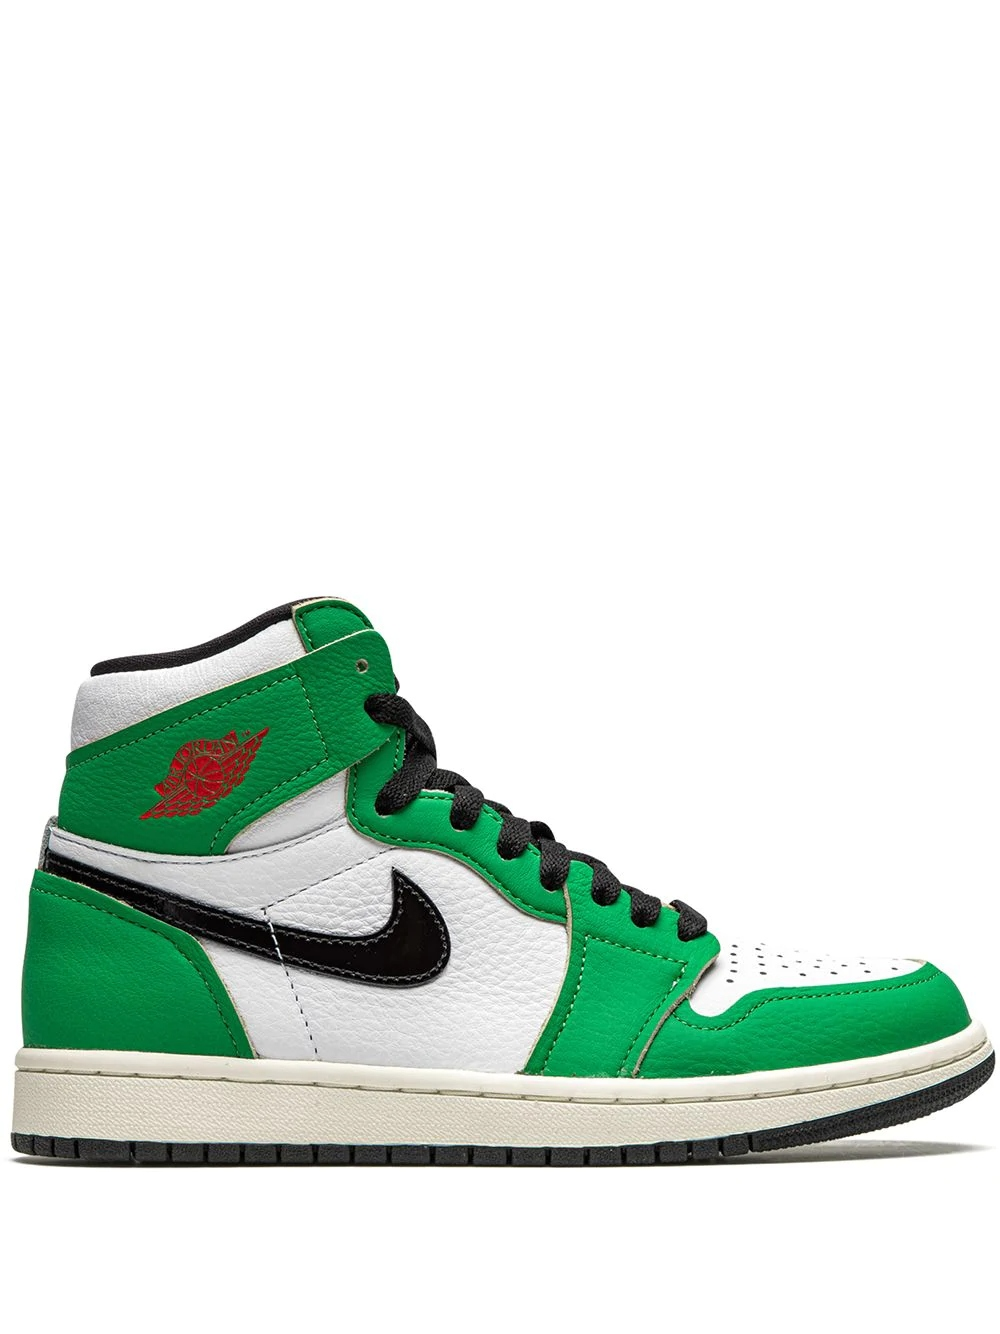 jordan-air-jordan-1-retro-high-og-sneakers